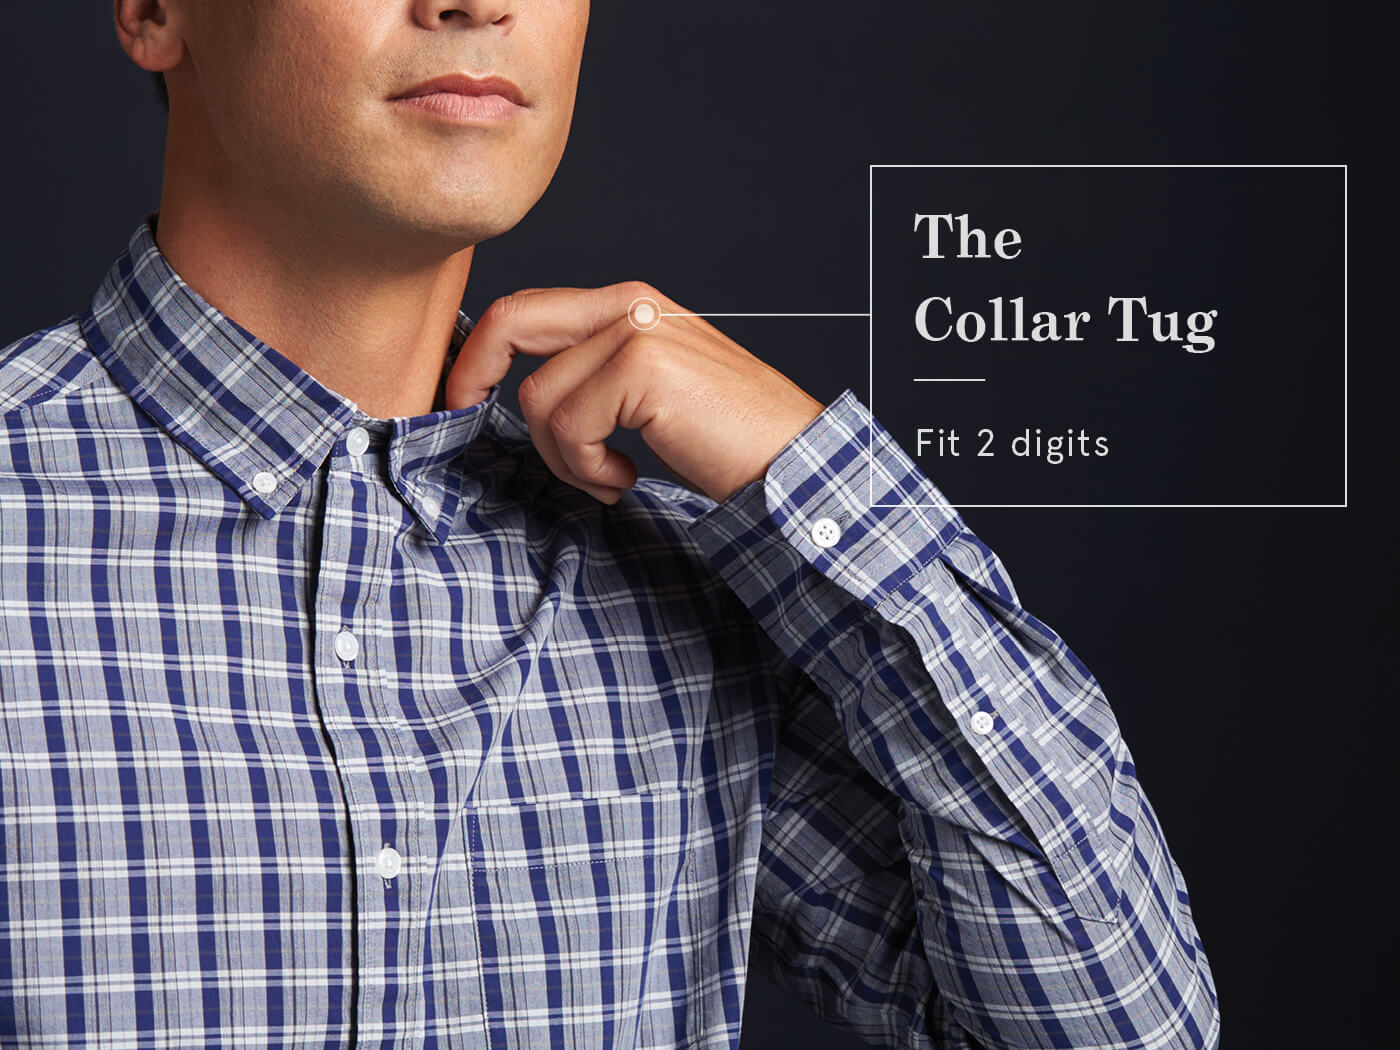 how to know if a dress shirt fits -can fit digits in the collar?